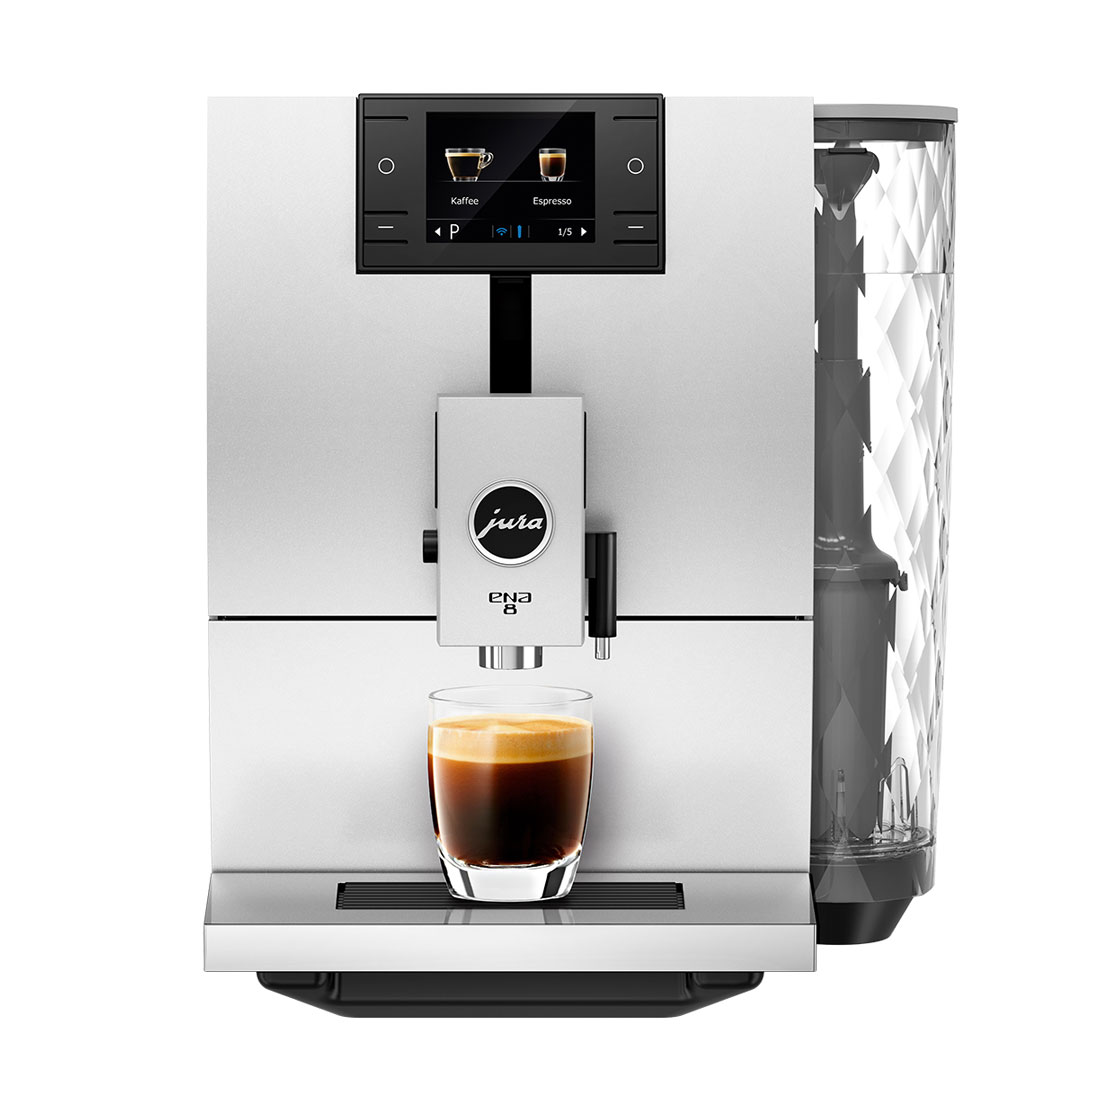 Jura ENA 8 Superautomatic Espresso Machine - Nordic White